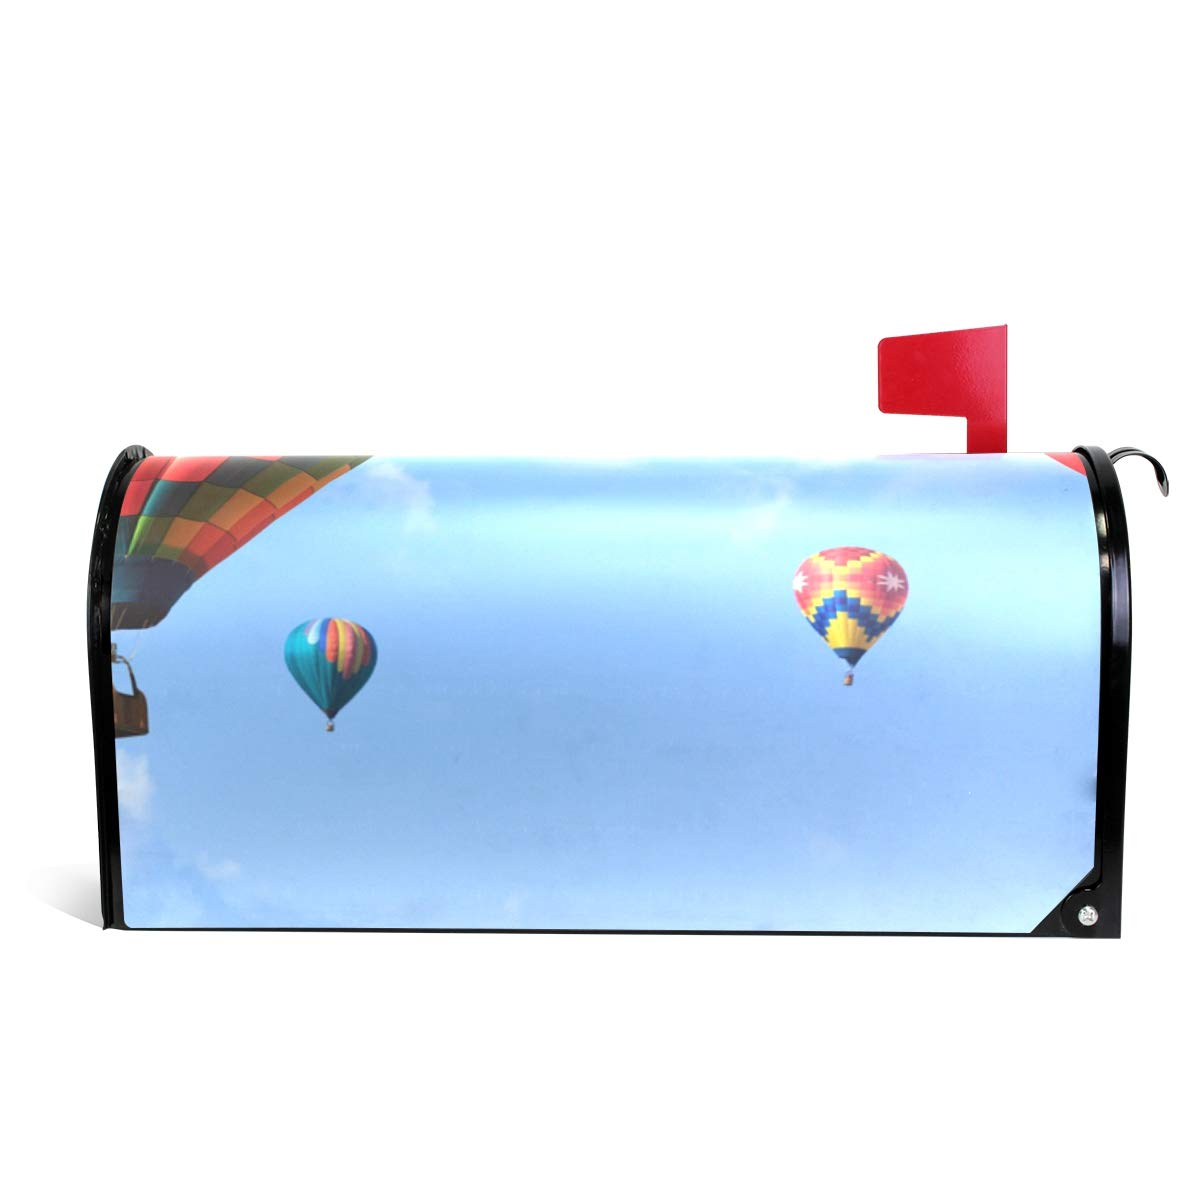 DEYYA Hot Air Balloon Magnetic Mailbox Covers and Wraps Personalized Decorative Standard Size 64.7x52.8cm